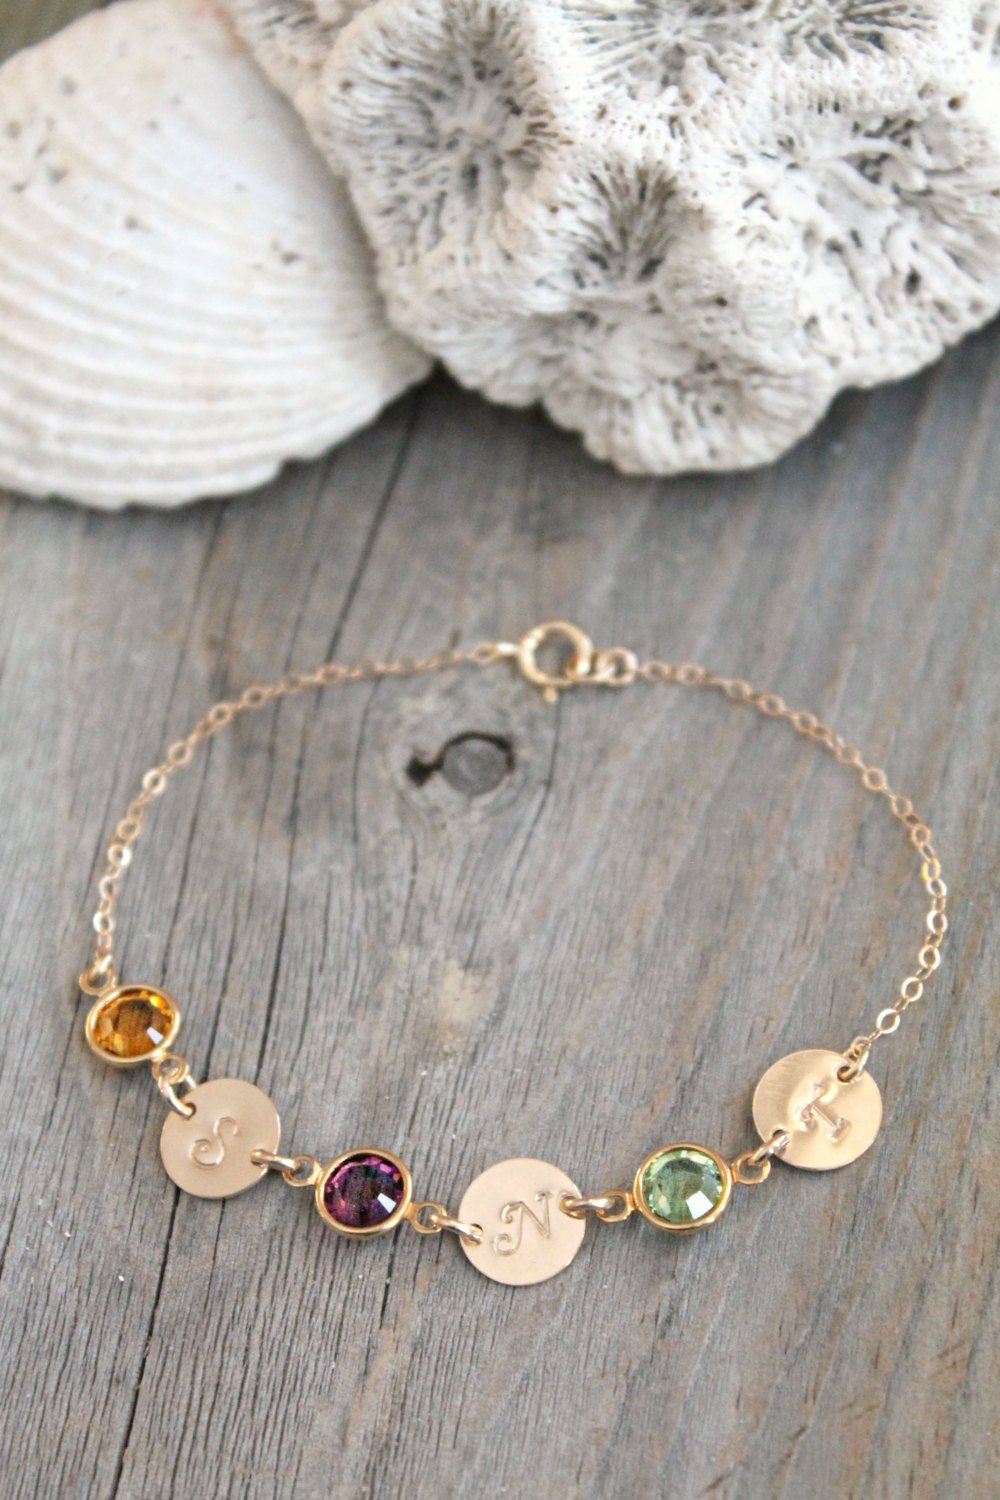 Personalized 14k gold filled Max 90% OFF initial custom Limited time cheap sale bracelet monogram